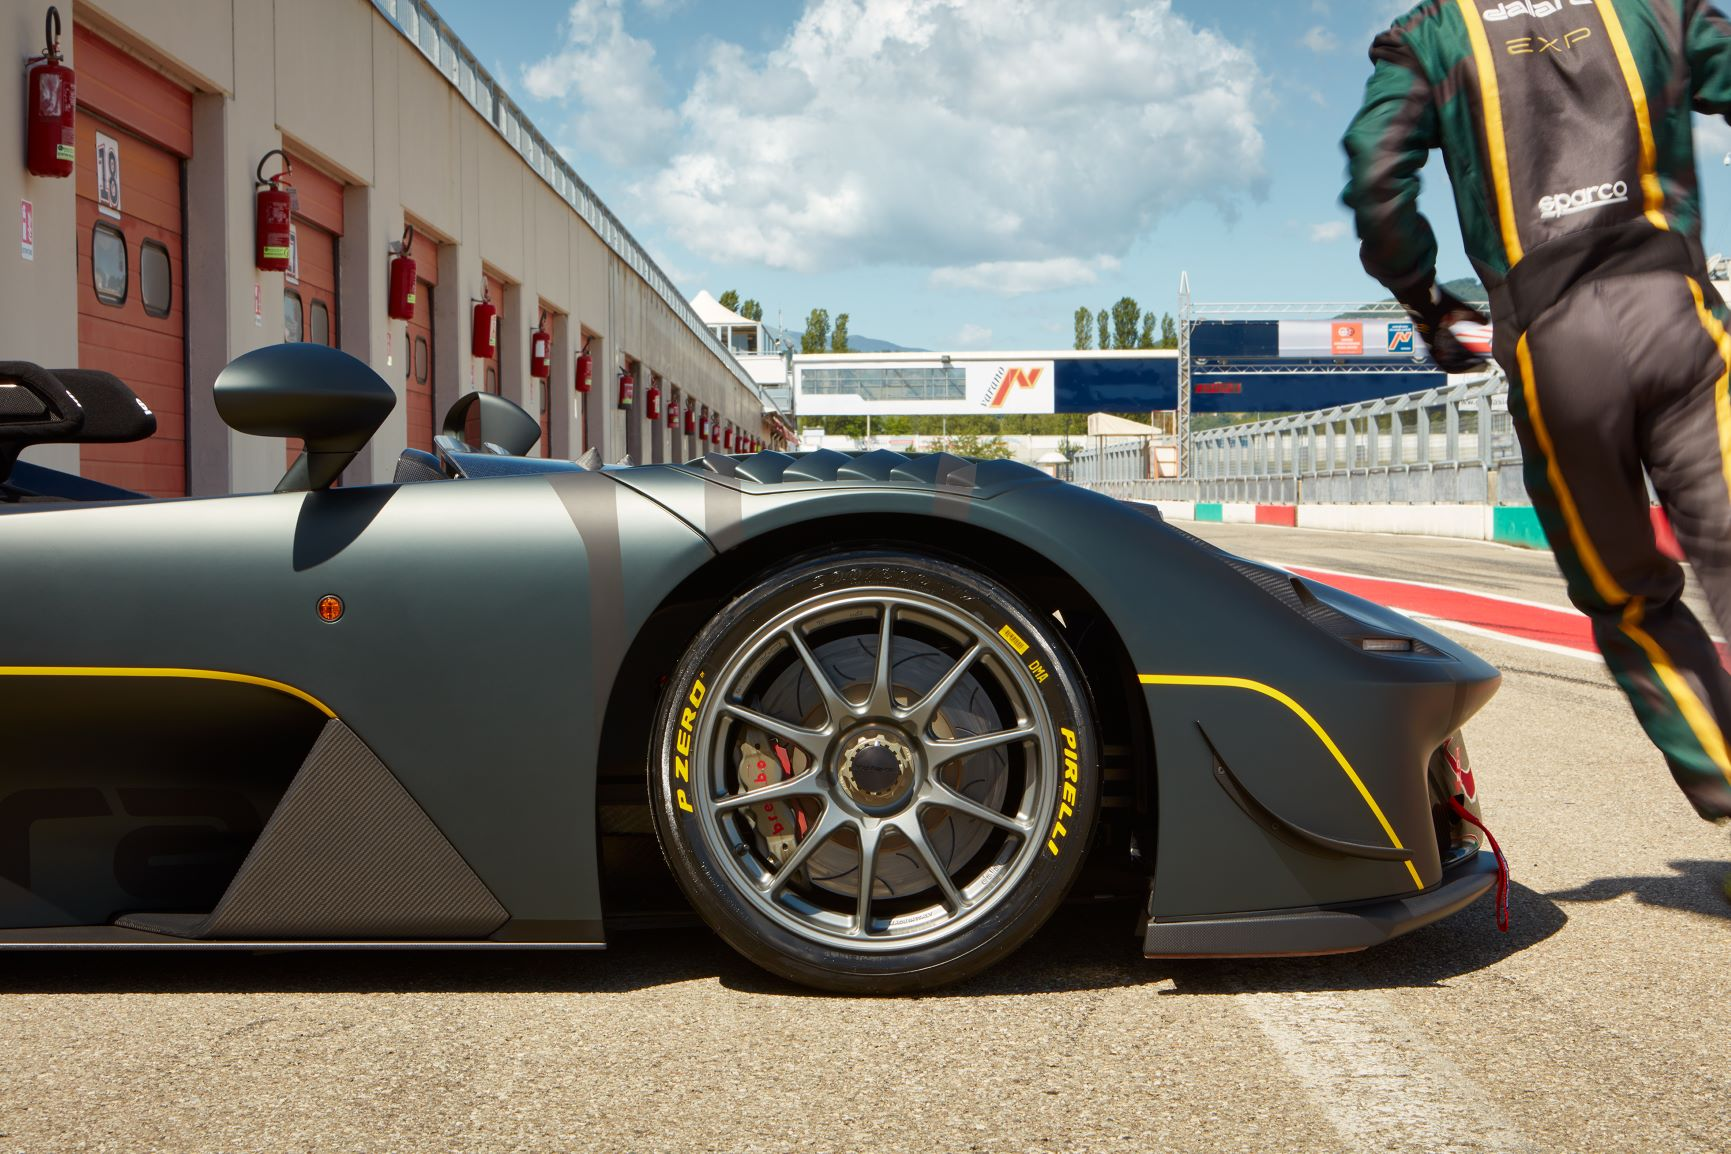 Pirelli P Zero Slick And The Dallara Stradale Exp Conquer Mugello Tyres Developed Especially For Trackday Variant Of Stradale That Laps Tuscan Circuit As Fast As A Gt3 Car